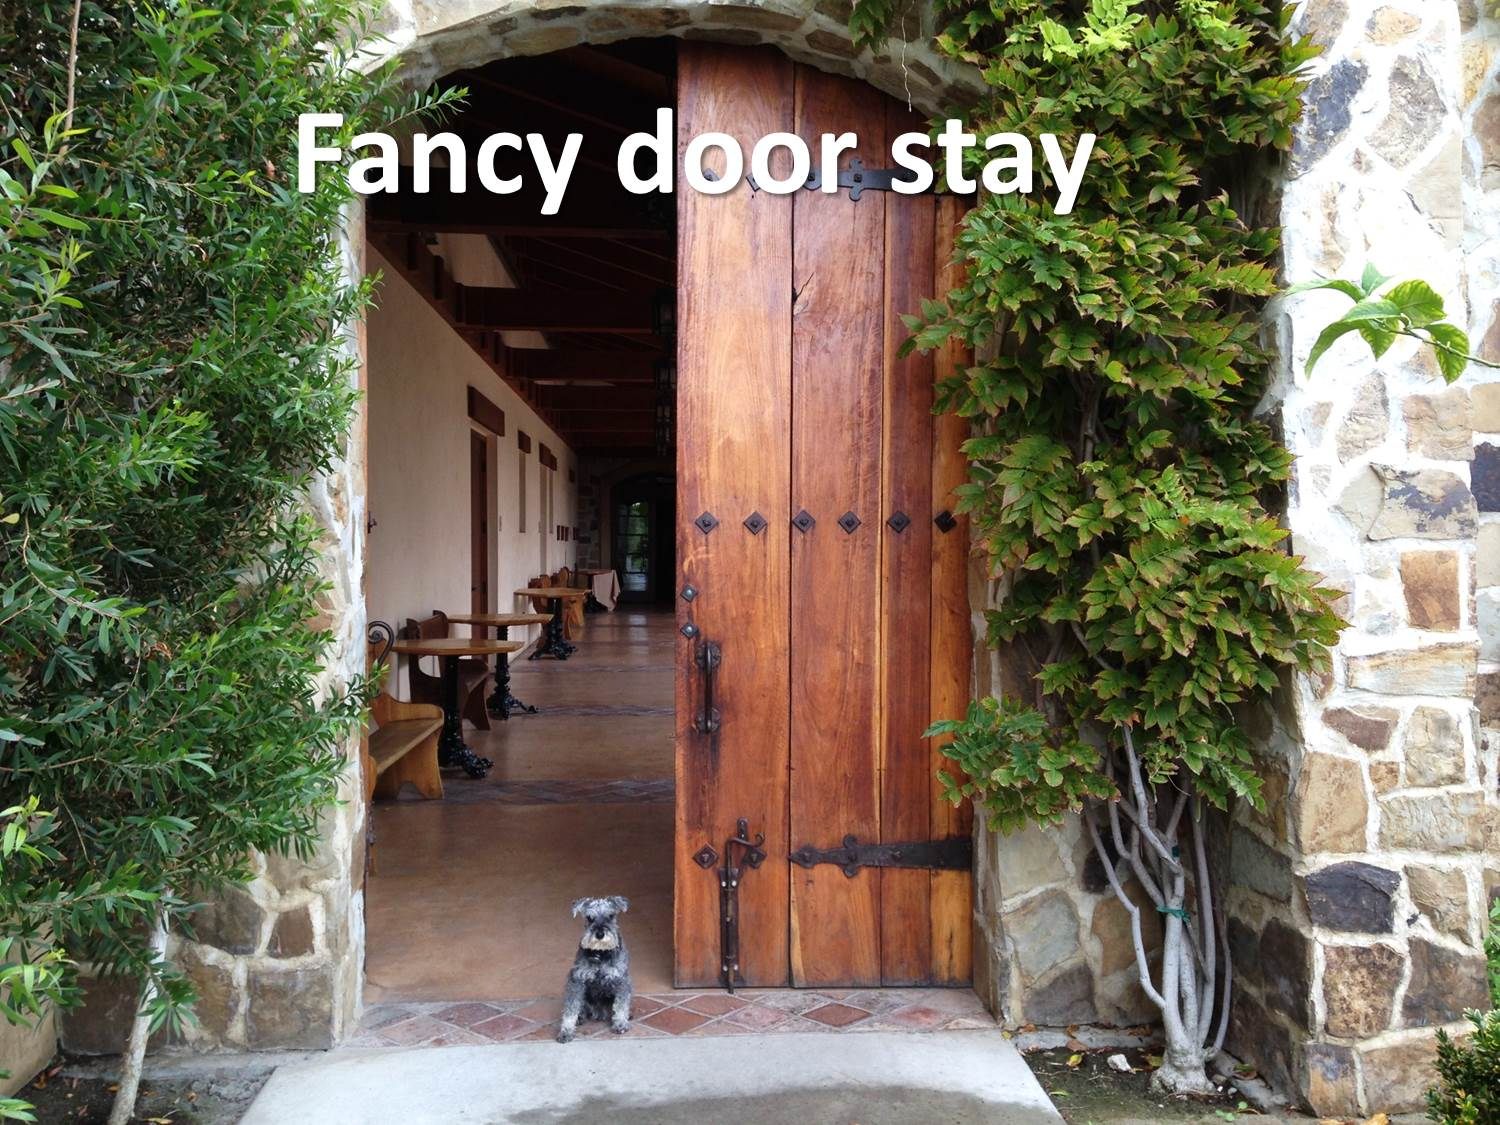 door stay - training a dog not to run out the door